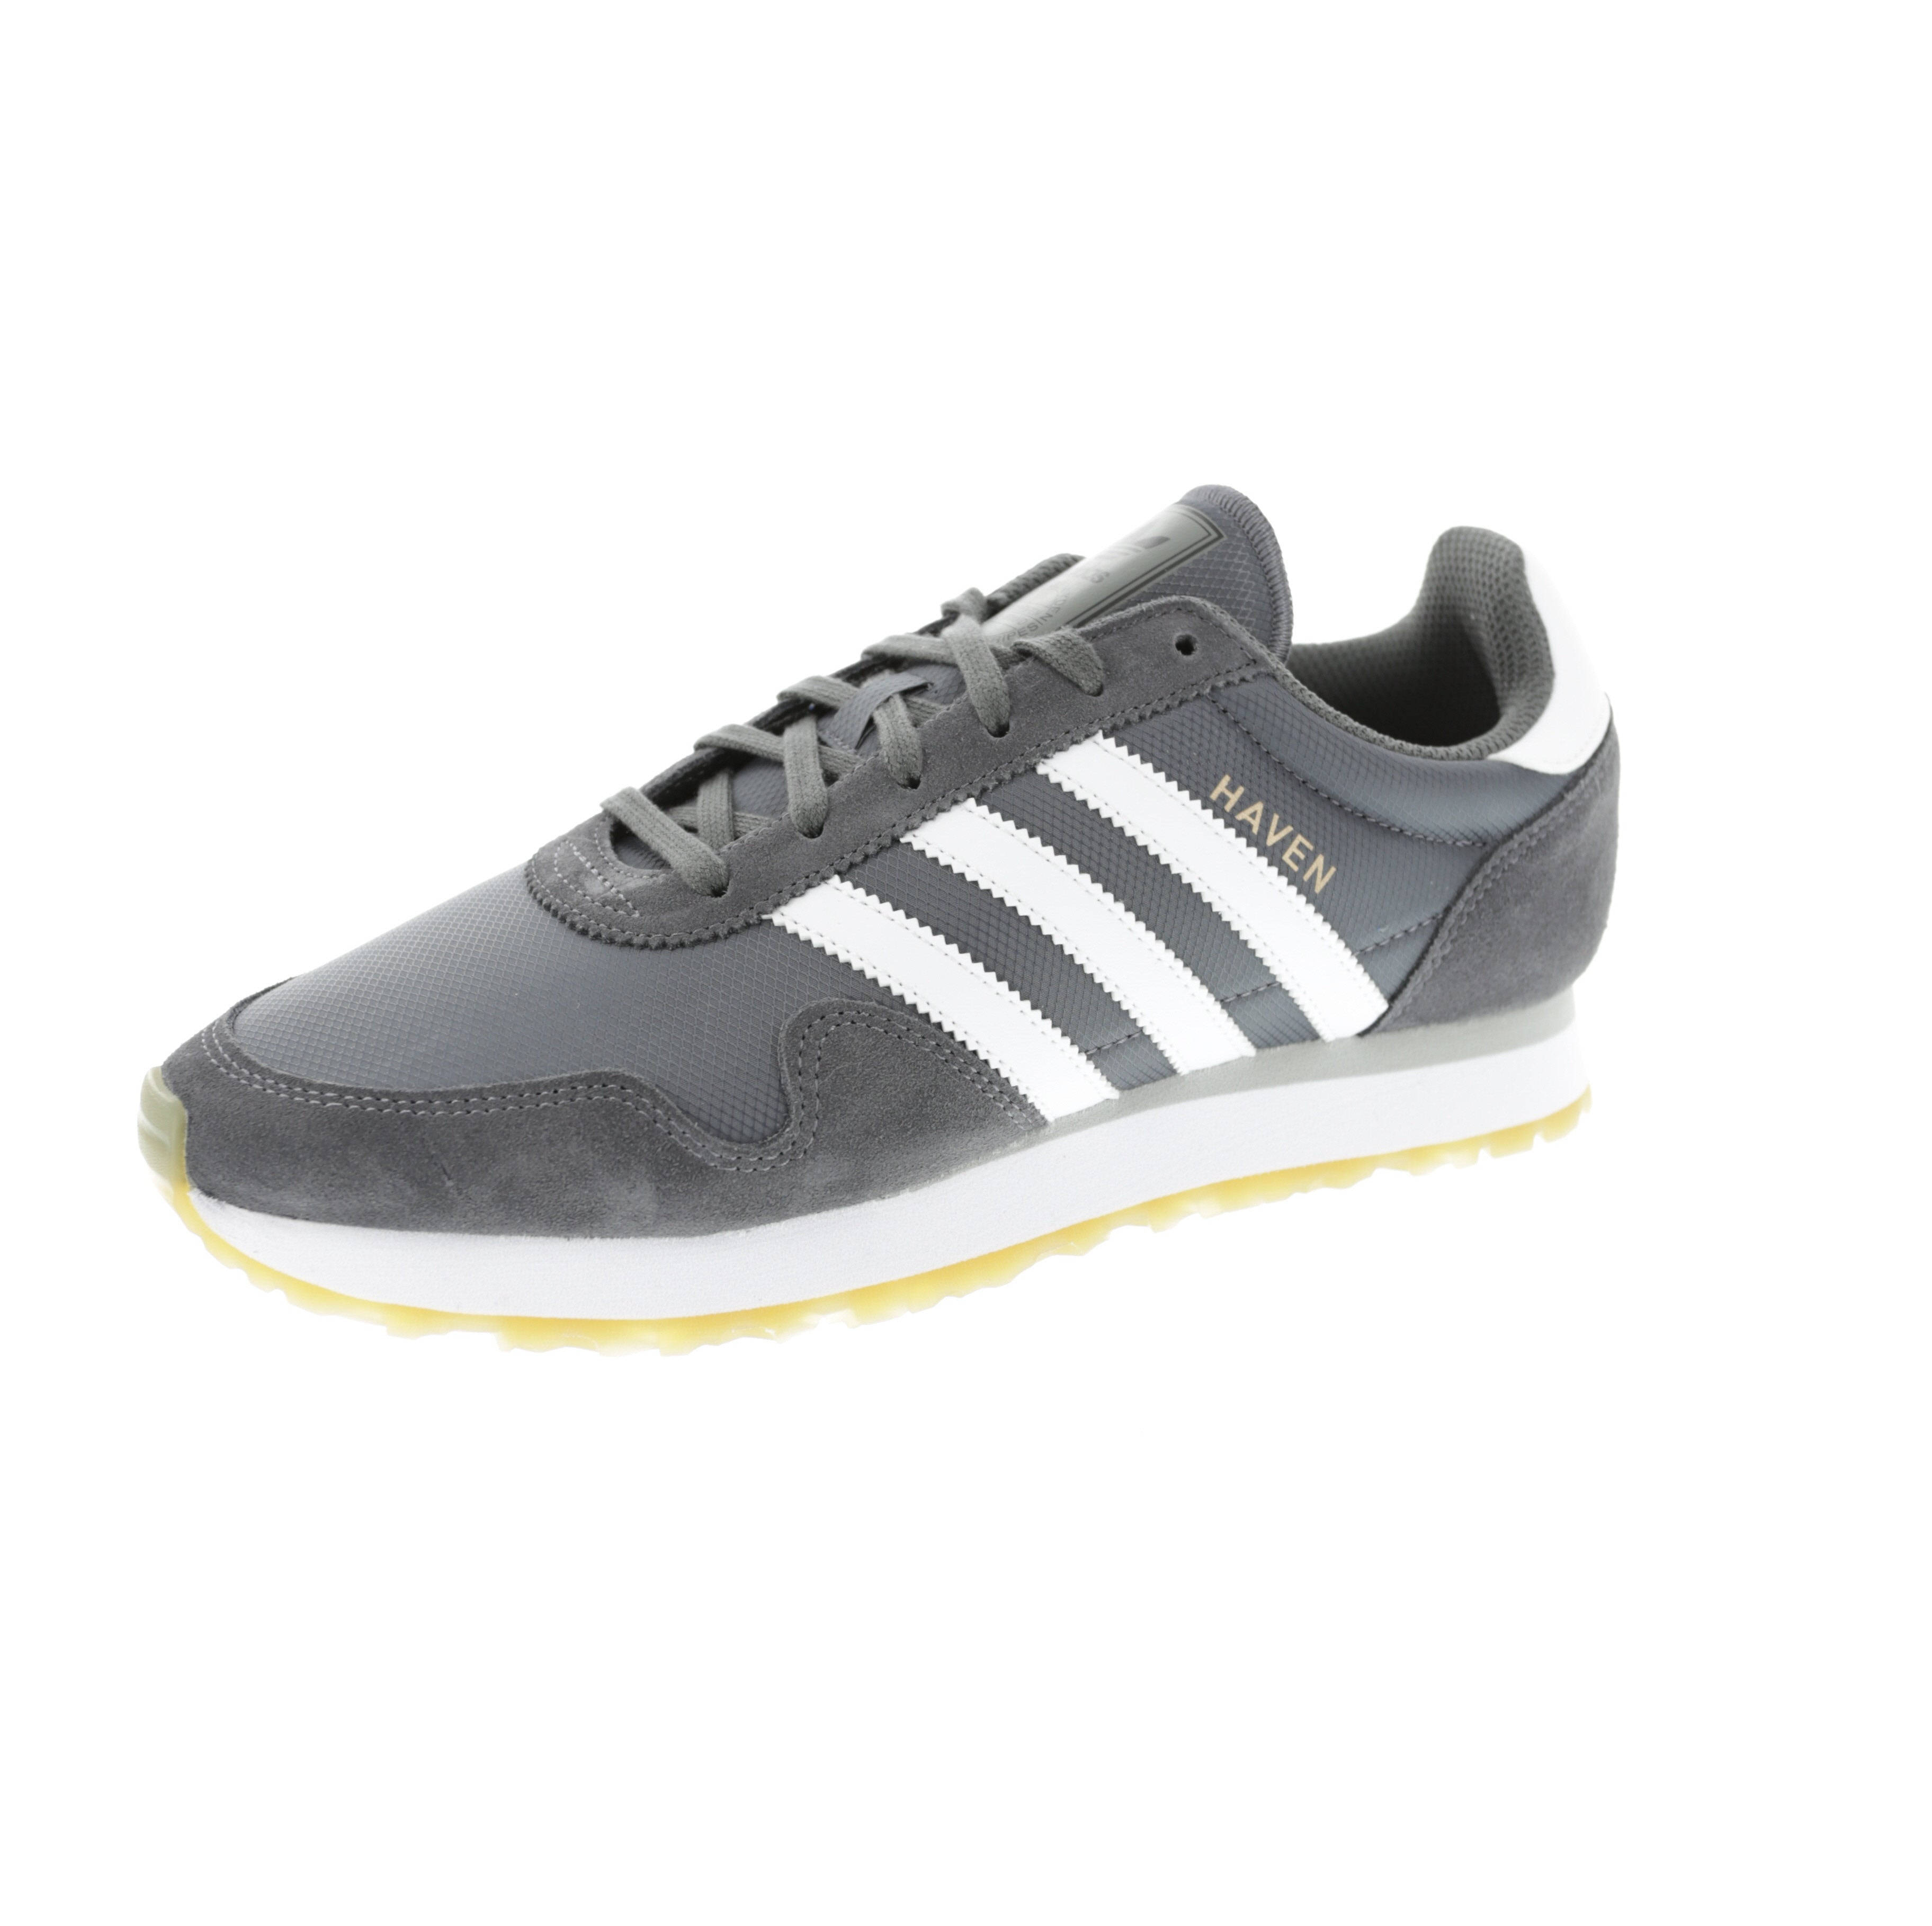 Women's Adidas Haven Sz 7 GreyWhite NWT